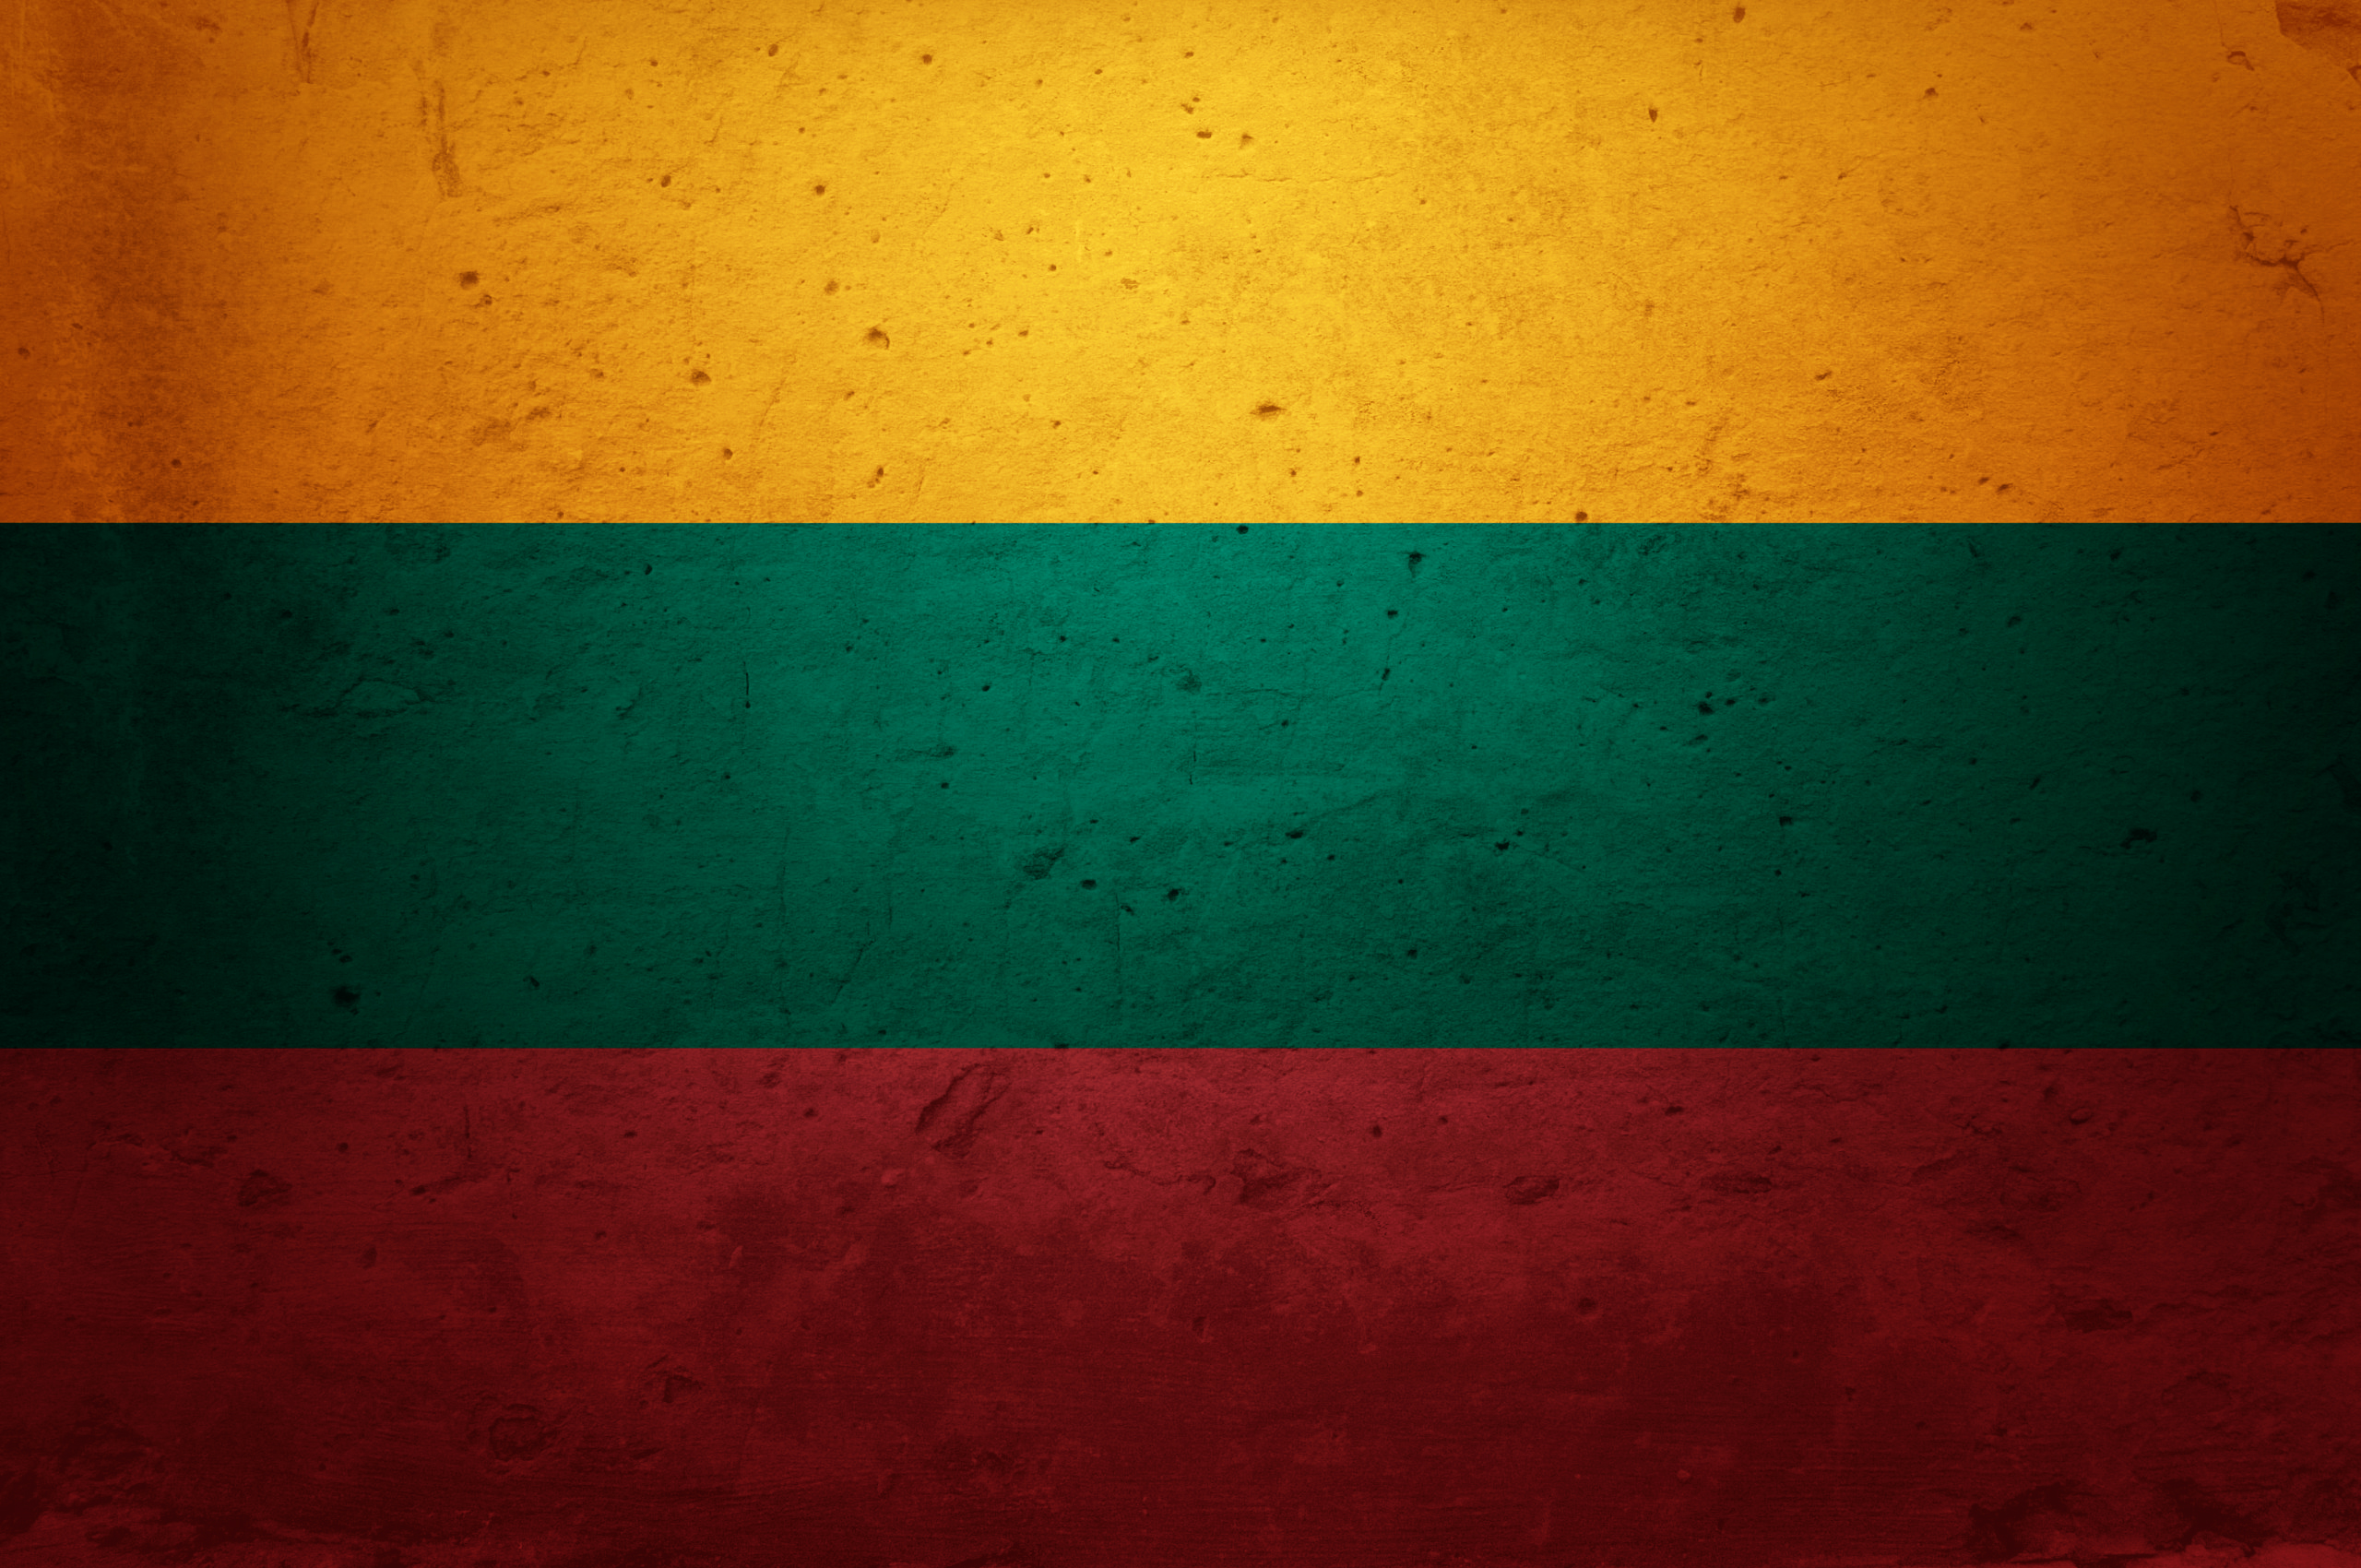 Flag Of Lithuania HD Wallpaper Background Image 2560x1700 ID 2560x1700